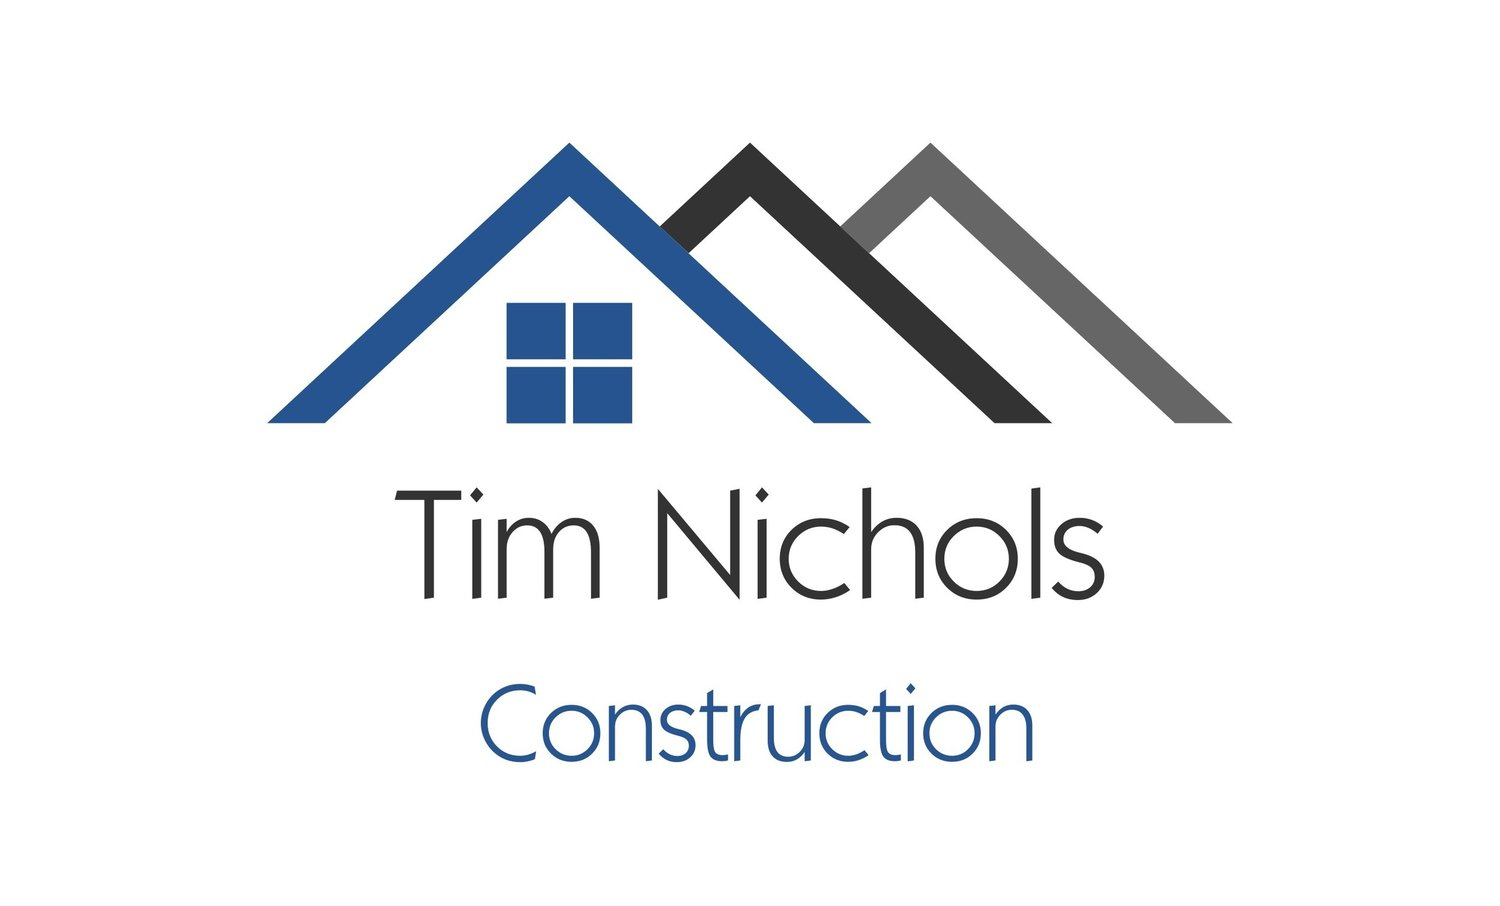 Tim Nichols Construction